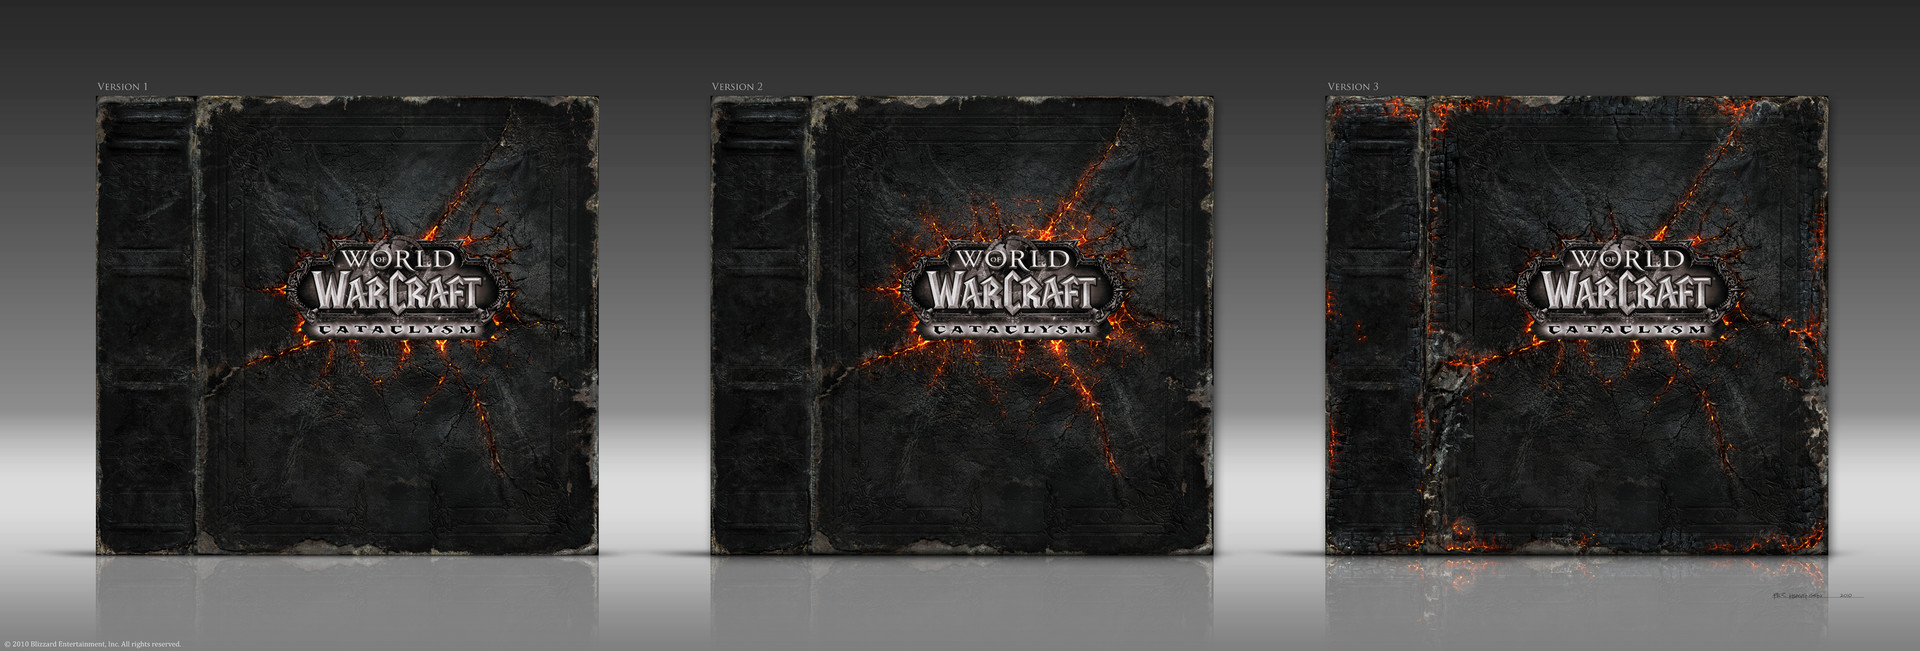 "Box Front and Spine Designs for ""World of Warcraft: Cataclysm"" CE Box Set"